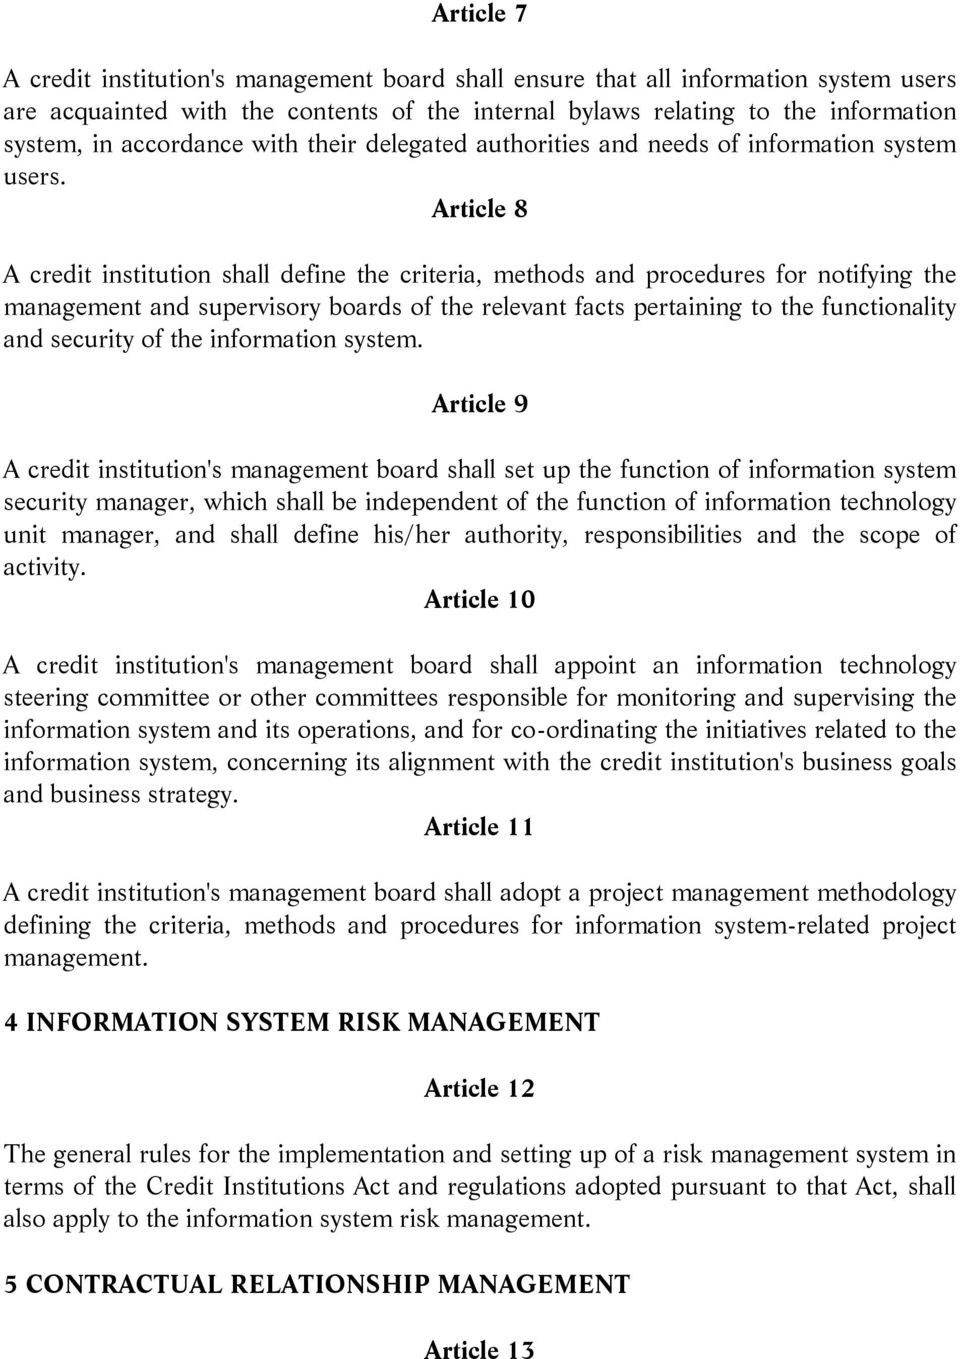 Article 8 A credit institution shall define the criteria, methods and procedures for notifying the management and supervisory boards of the relevant facts pertaining to the functionality and security